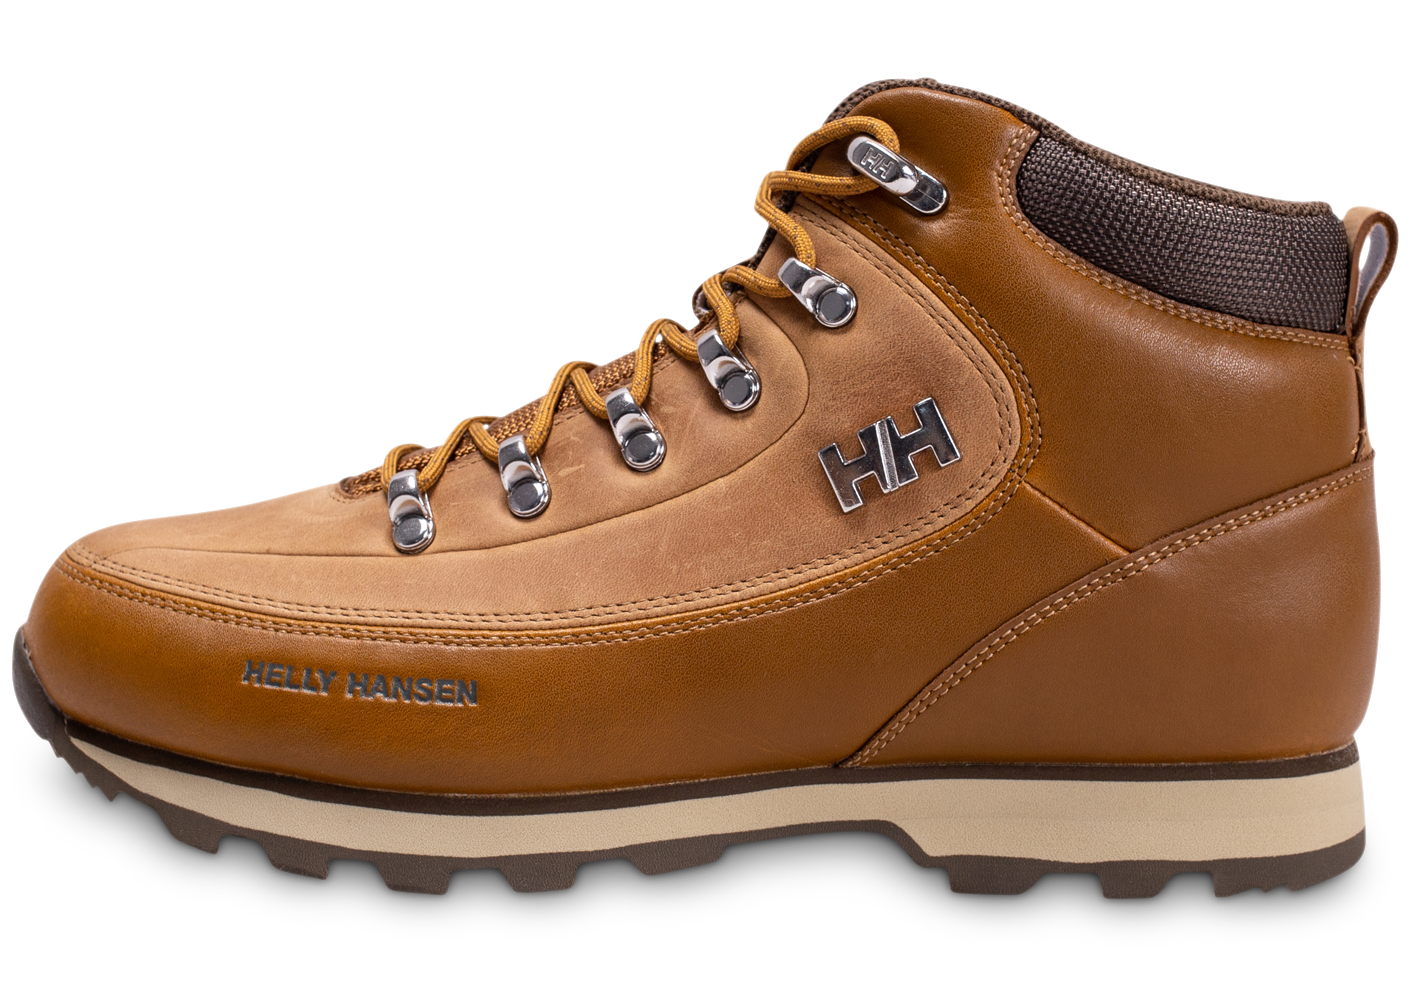 Helly hansen homme the forester marron boots